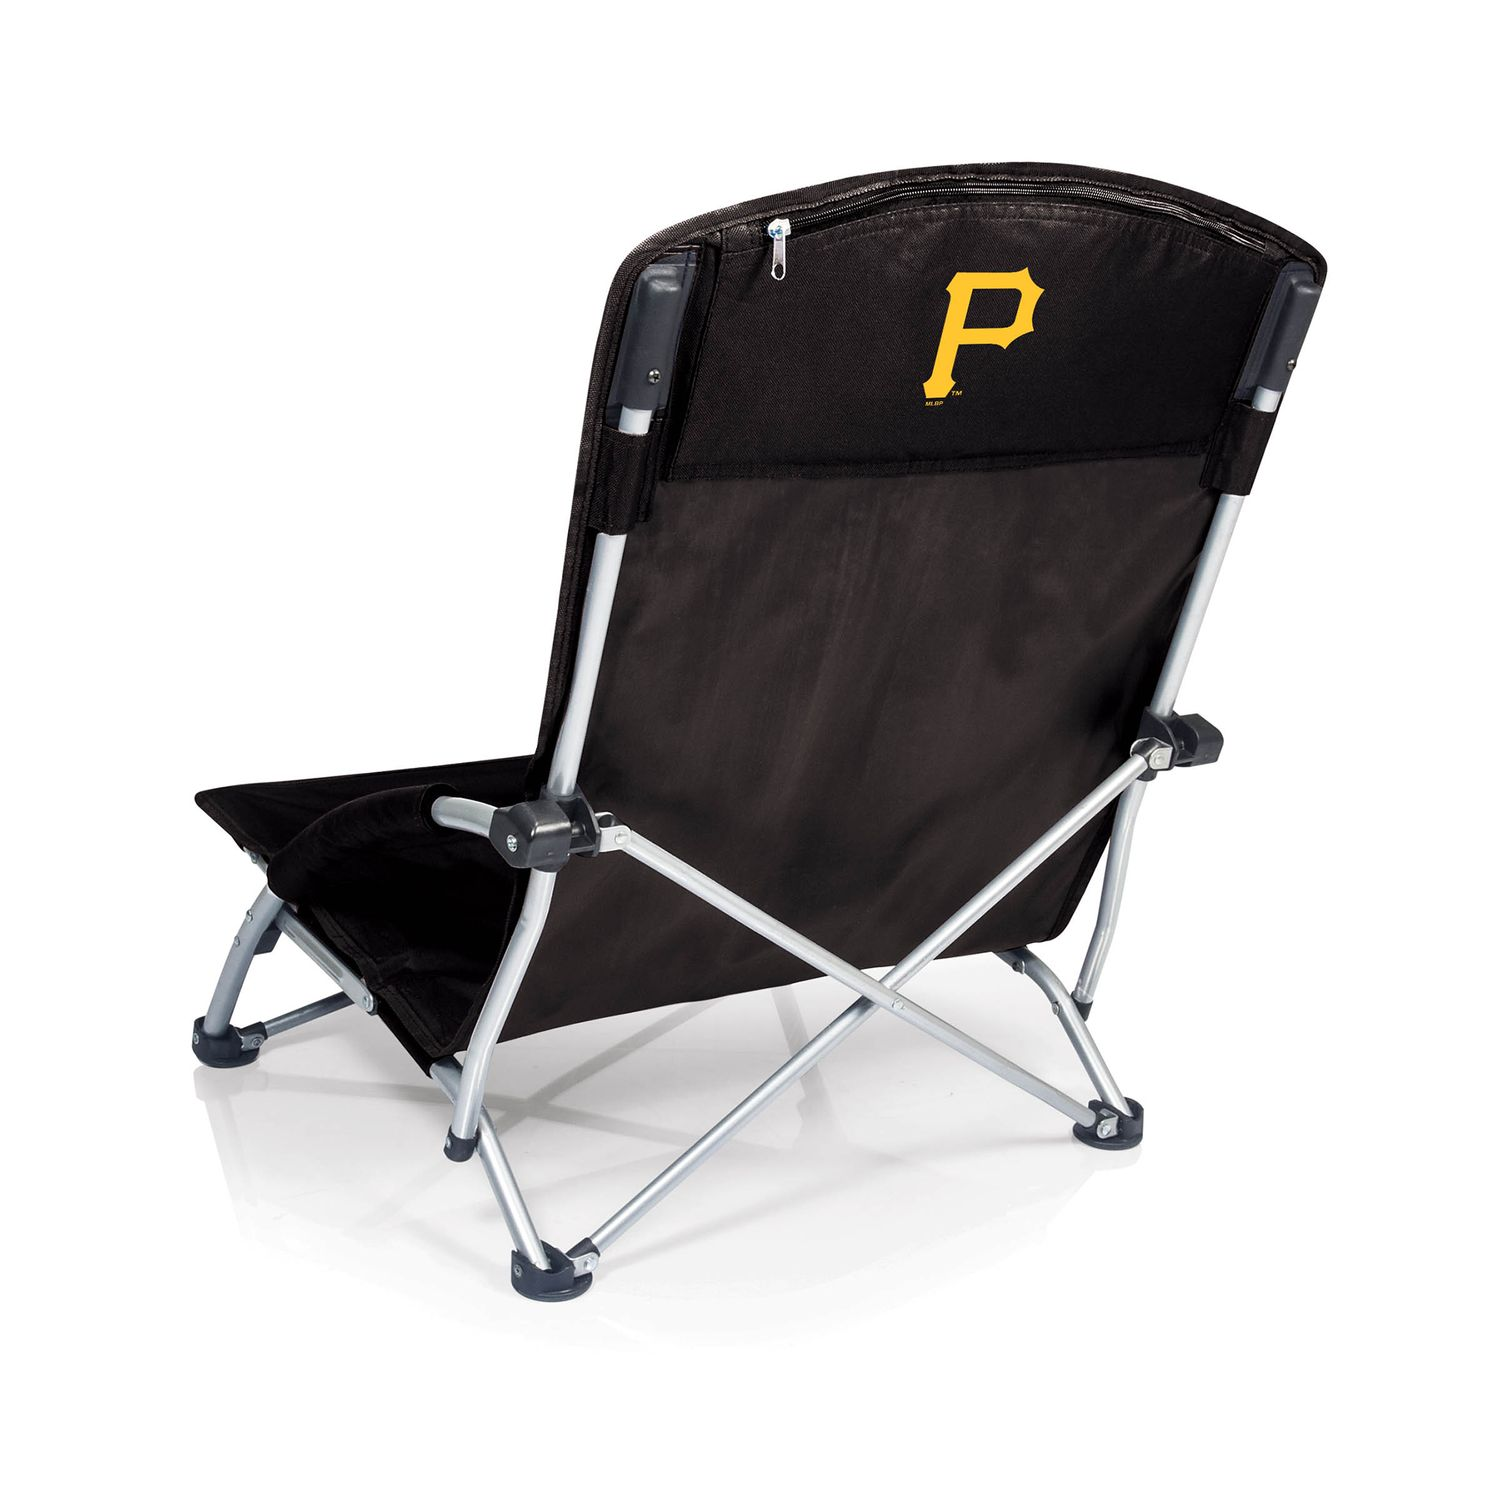 portable beach chair aluminum lawn chairs picnic time pittsburgh pirates tranquility